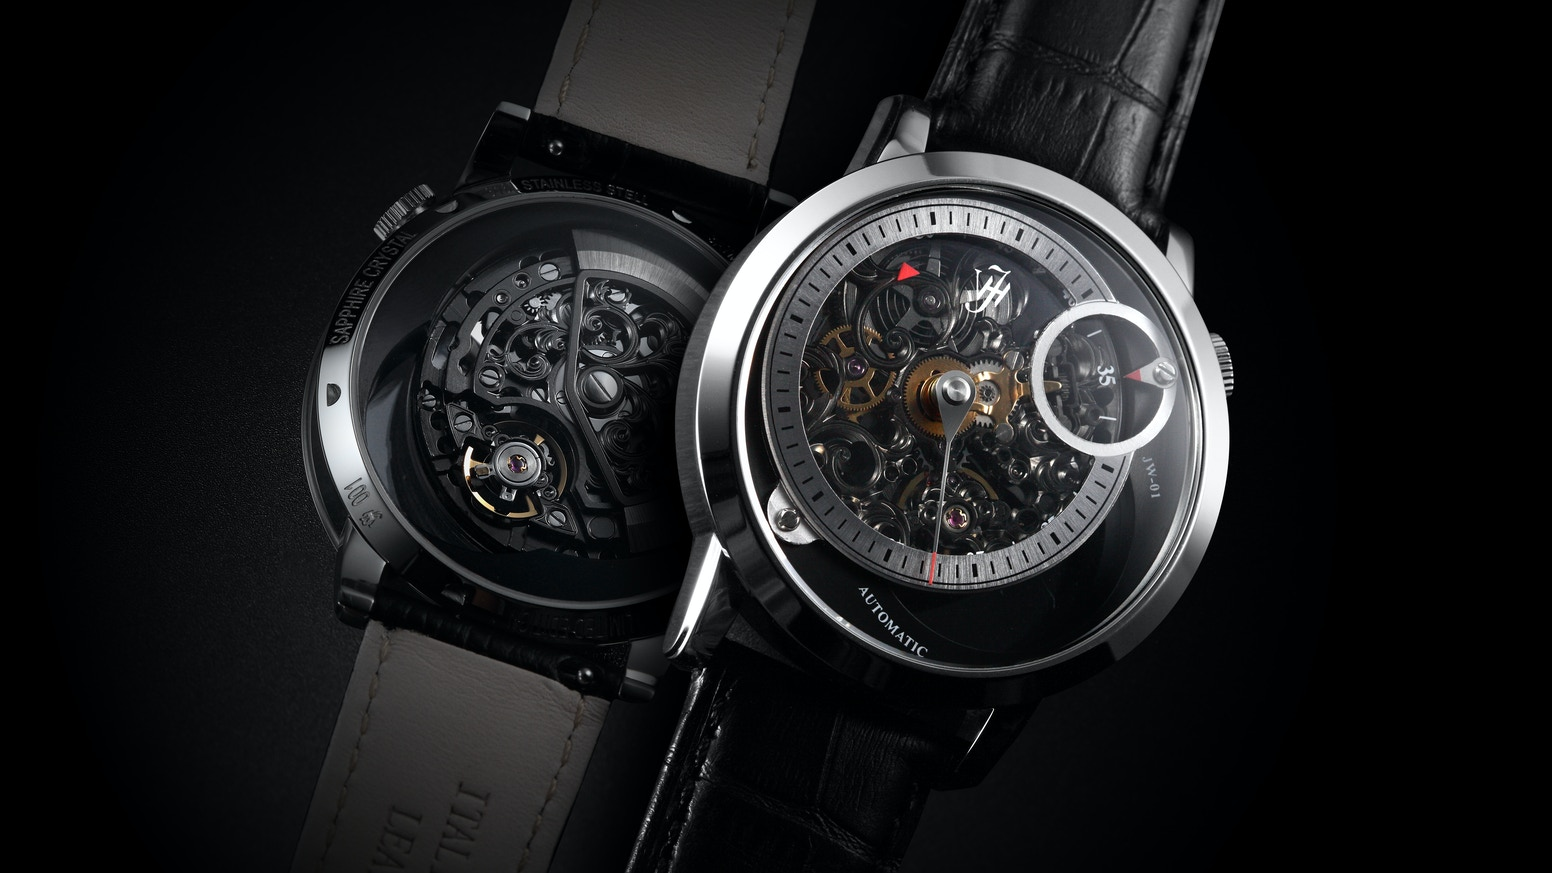 JW-01 is a designer watch created by using Golden ratio, new time displaying method, and new skeleton in-house movement.